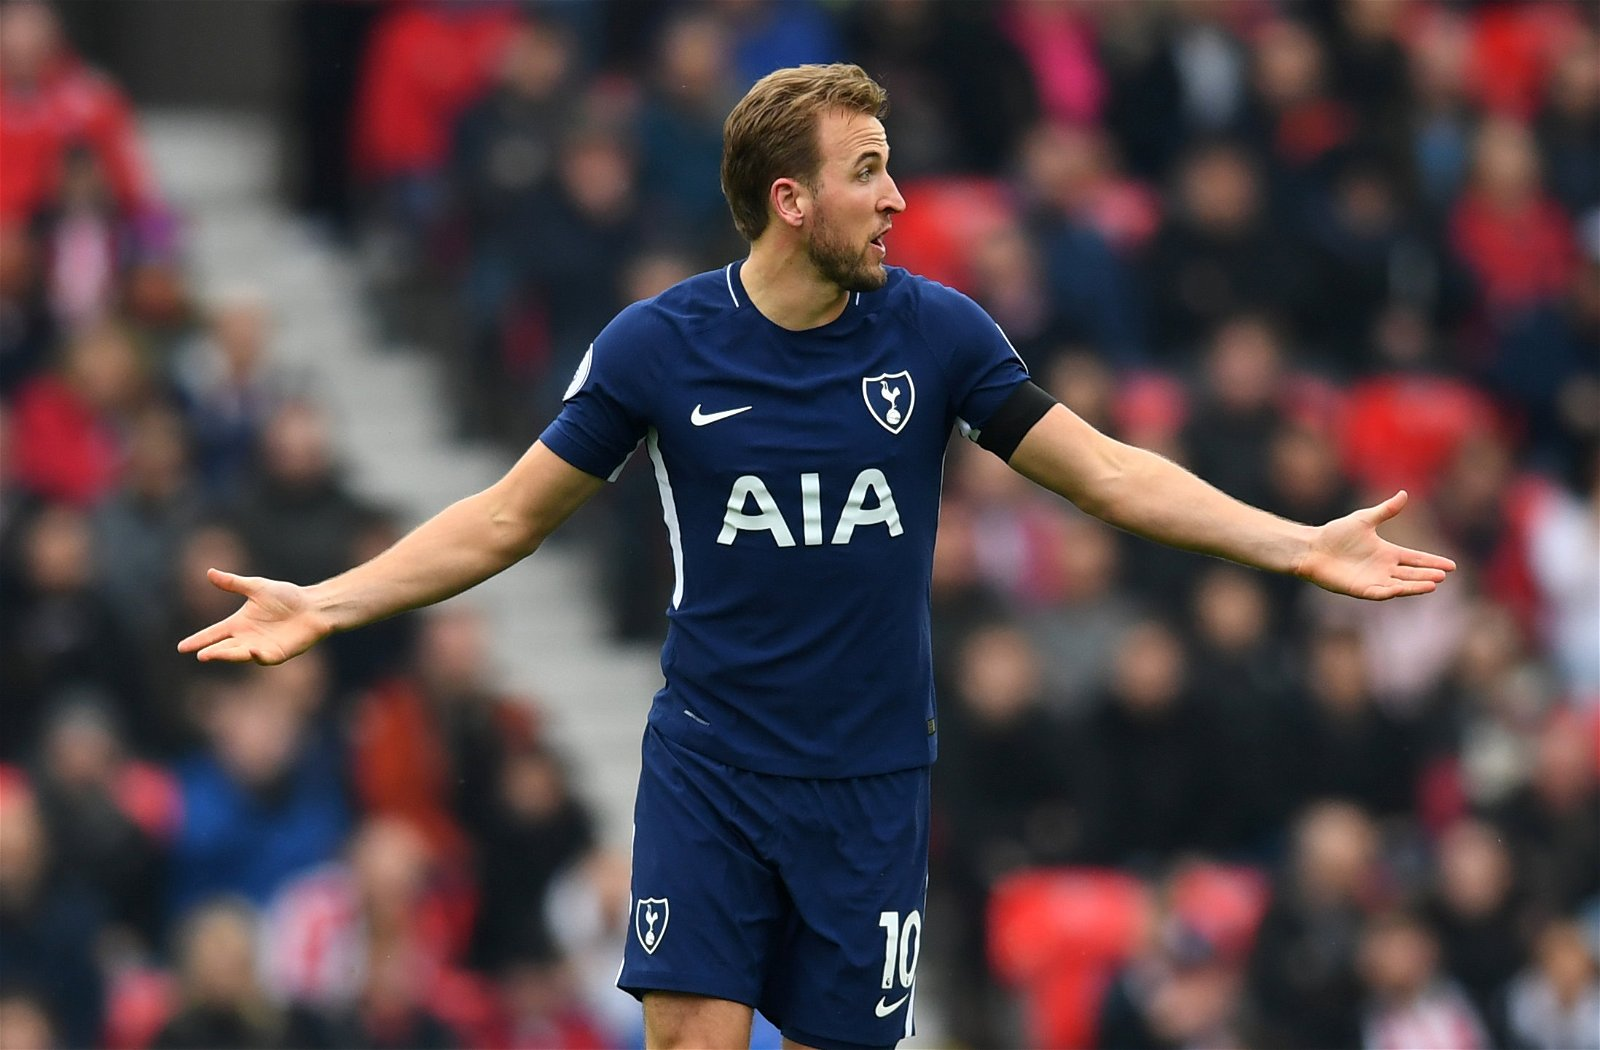 Harry Kane looks frustrated during Tottenham Hotspur's Premier League match against Stoke City